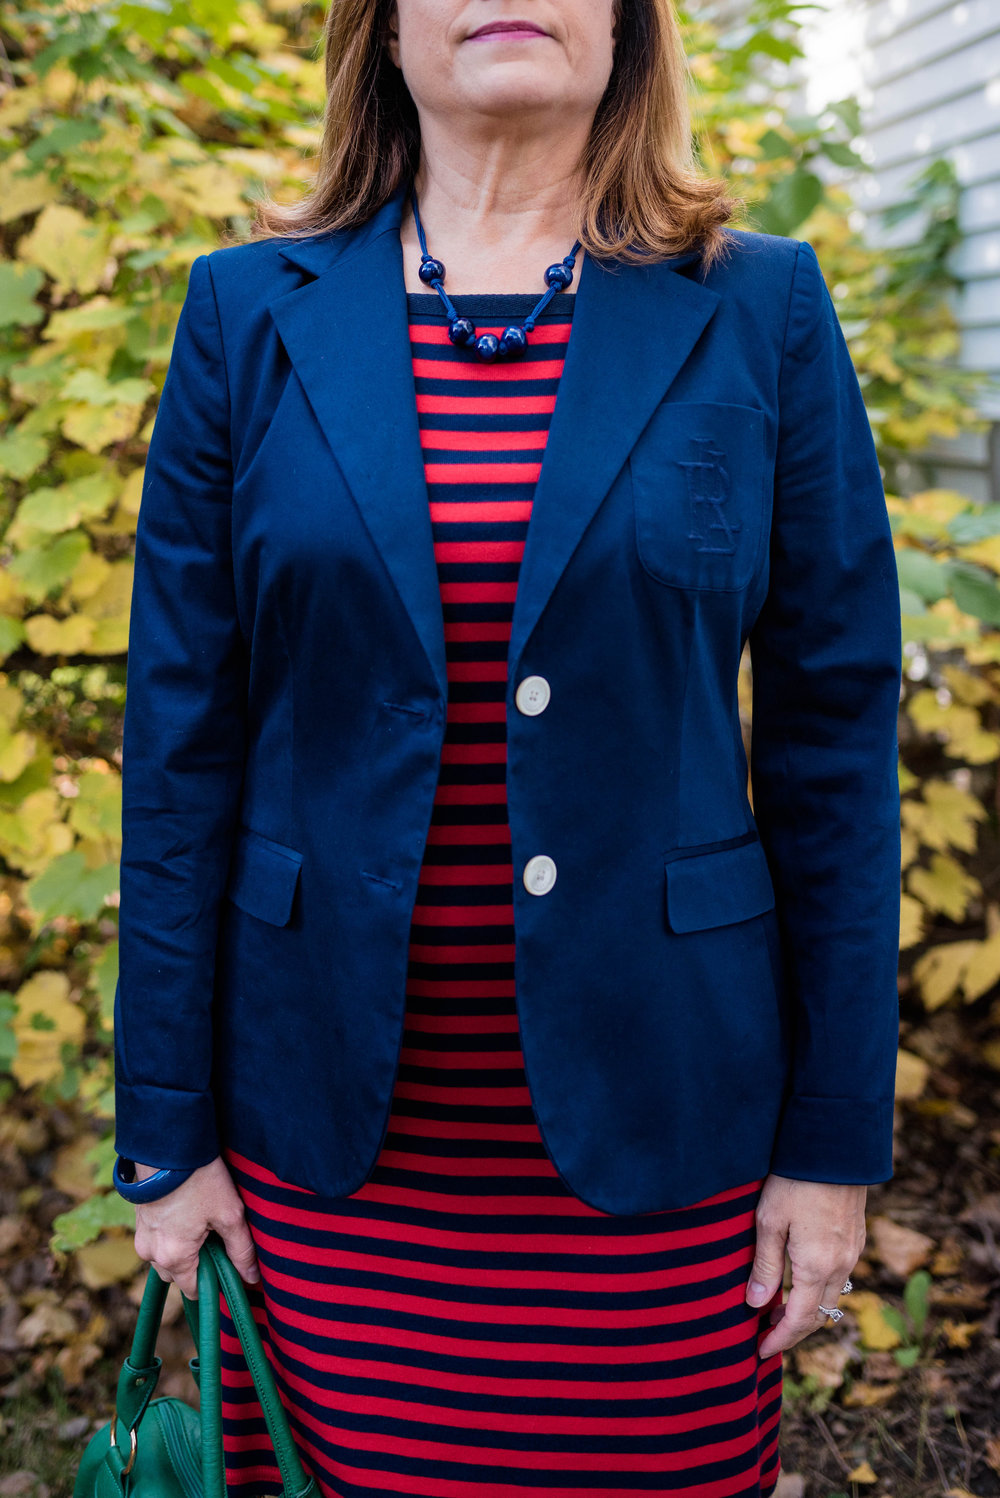 Piece Perfect - navy blazer outfit